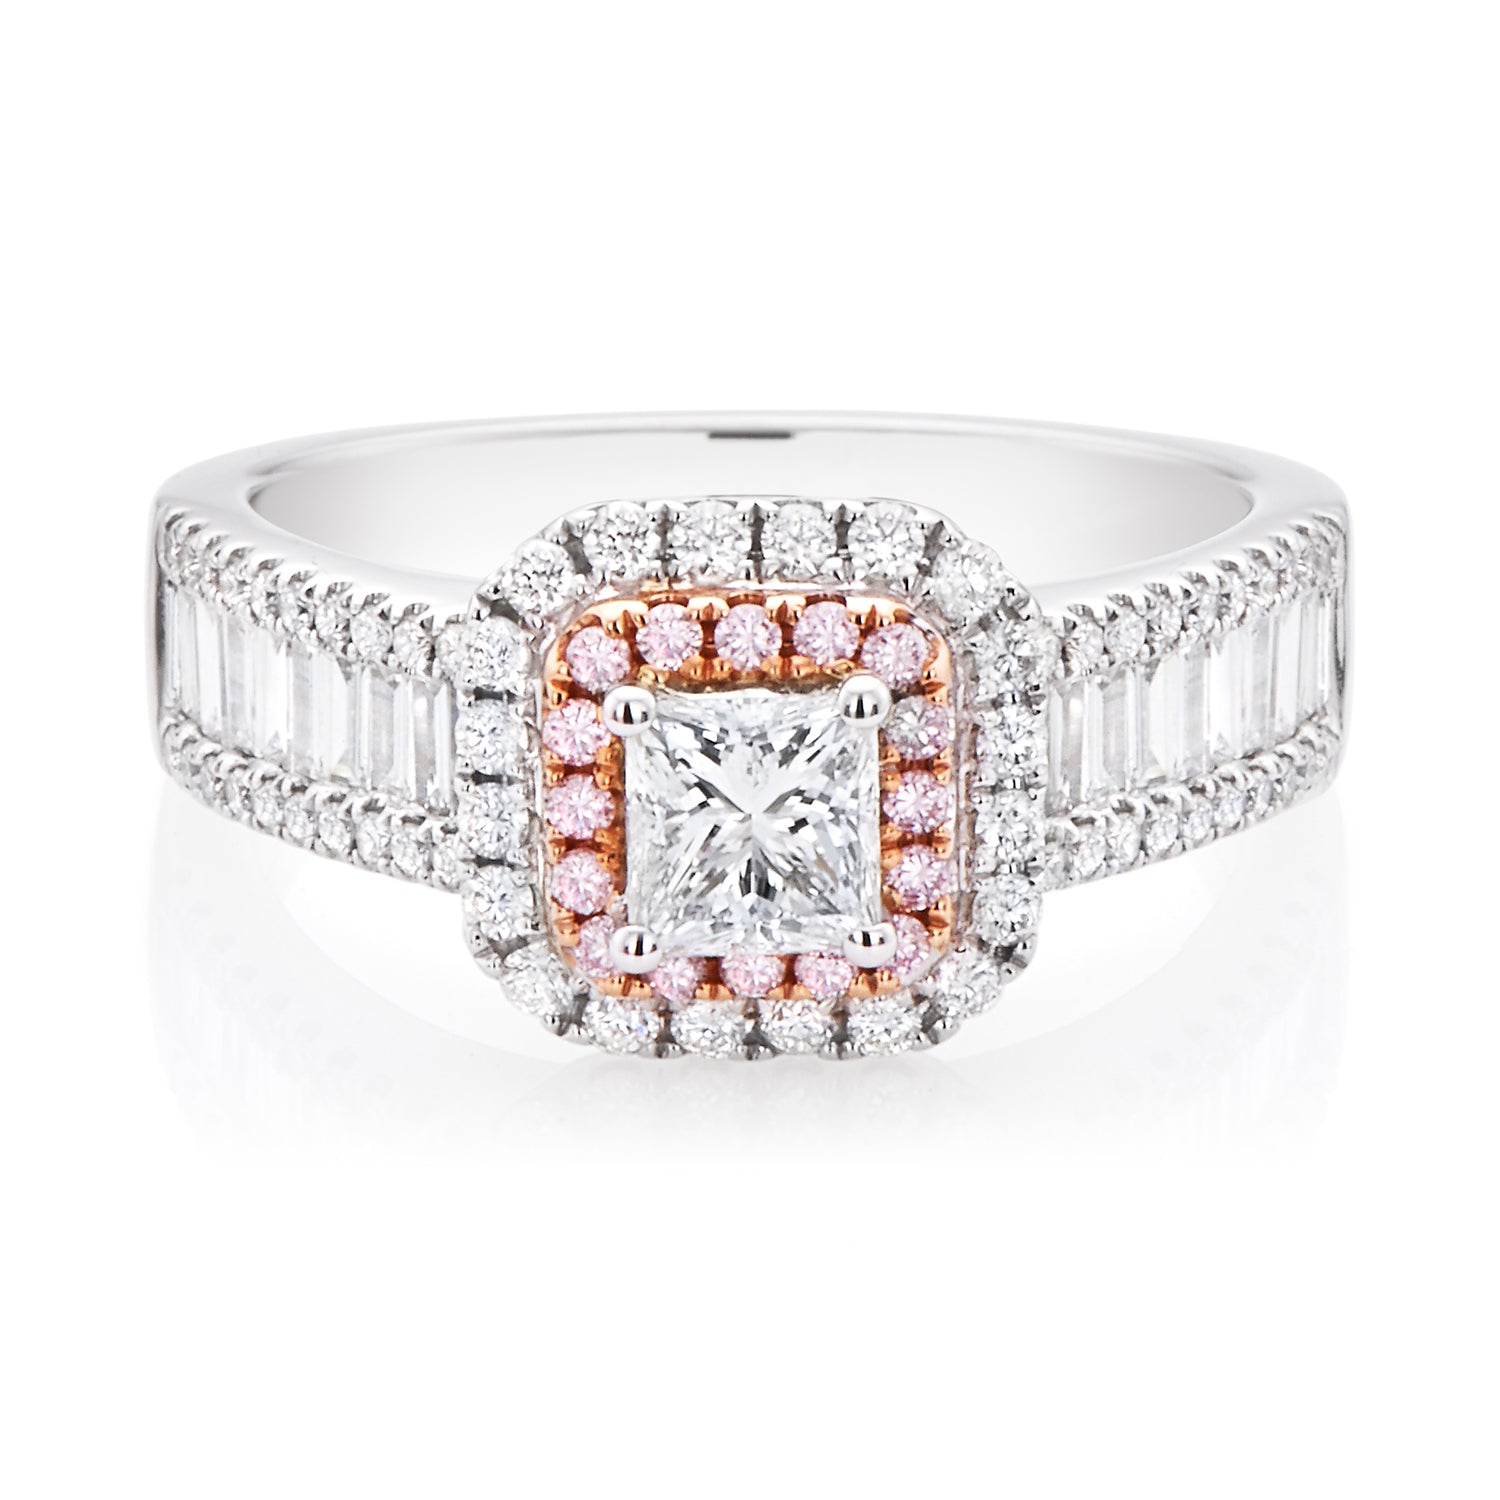 Rand 18ct Rose & White Gold Princess, Round Brilliant & Baguette Cut with 1.25 CARAT tw of Diamonds